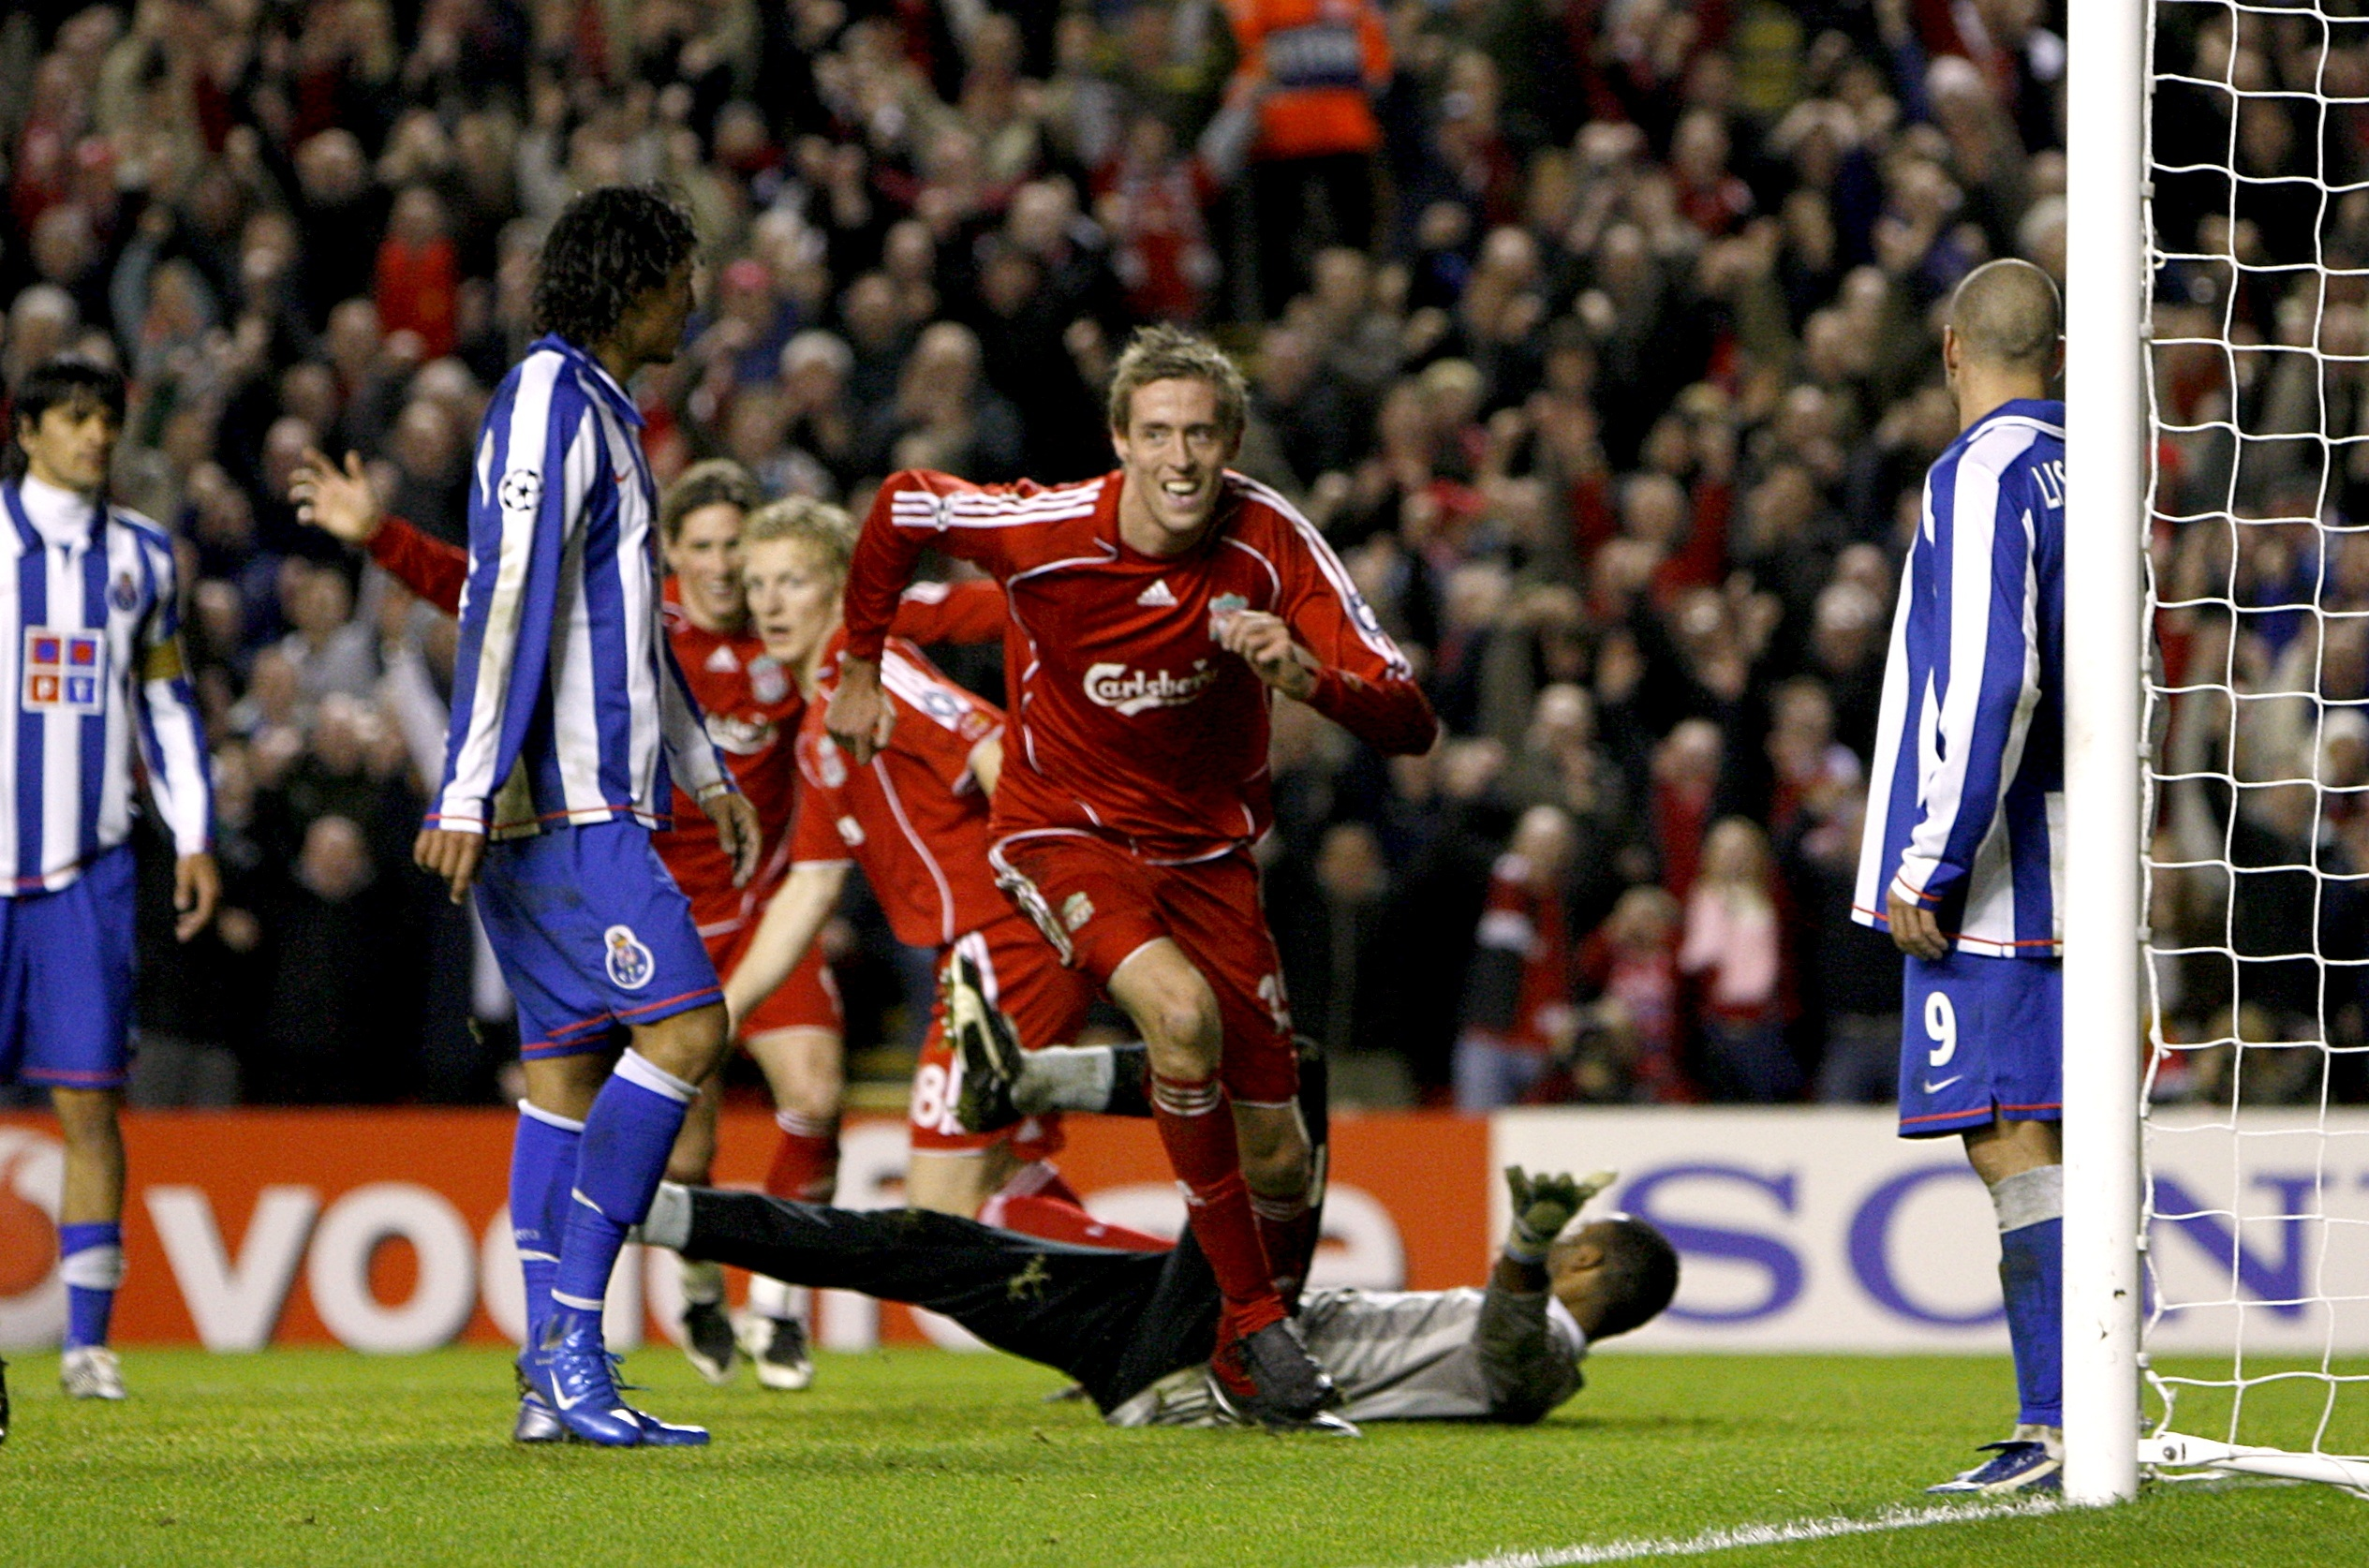 Crouch has experience in Europe playing for Liverpool in the Champions League. Image: PA Images